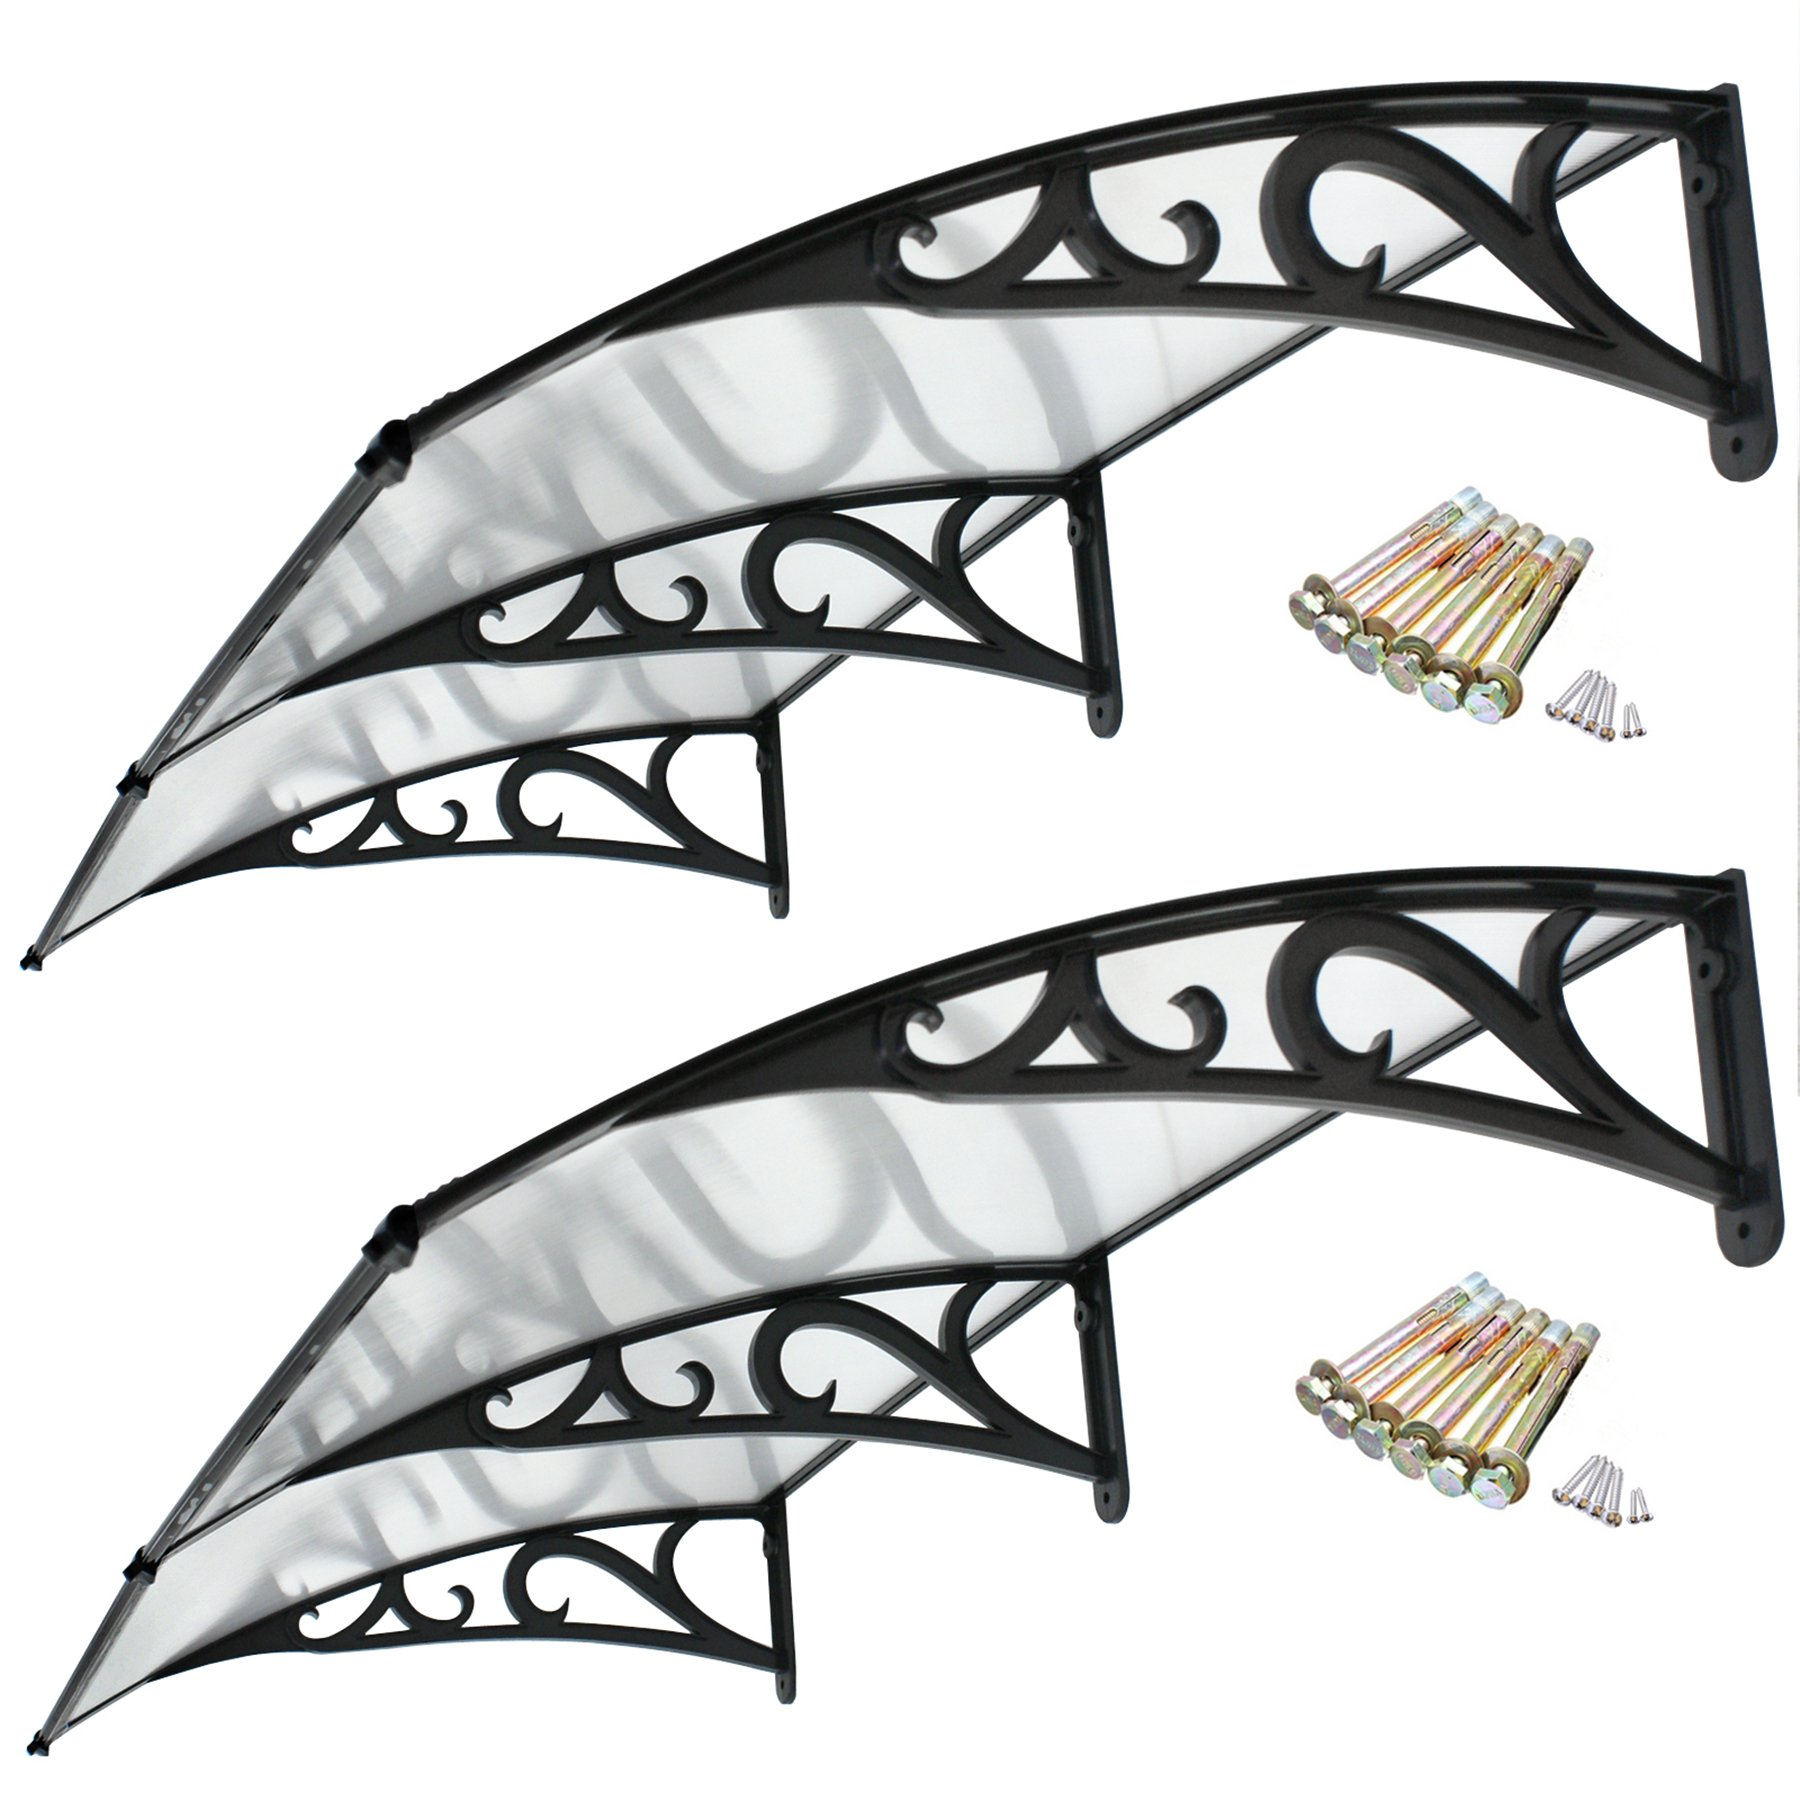 F2C Set of 2 40''x 80'' DIY Outdoor Polycarbonate Front Door Window Awning Patio Frey Board Cover Canopy (2PCS frame of the pattern)